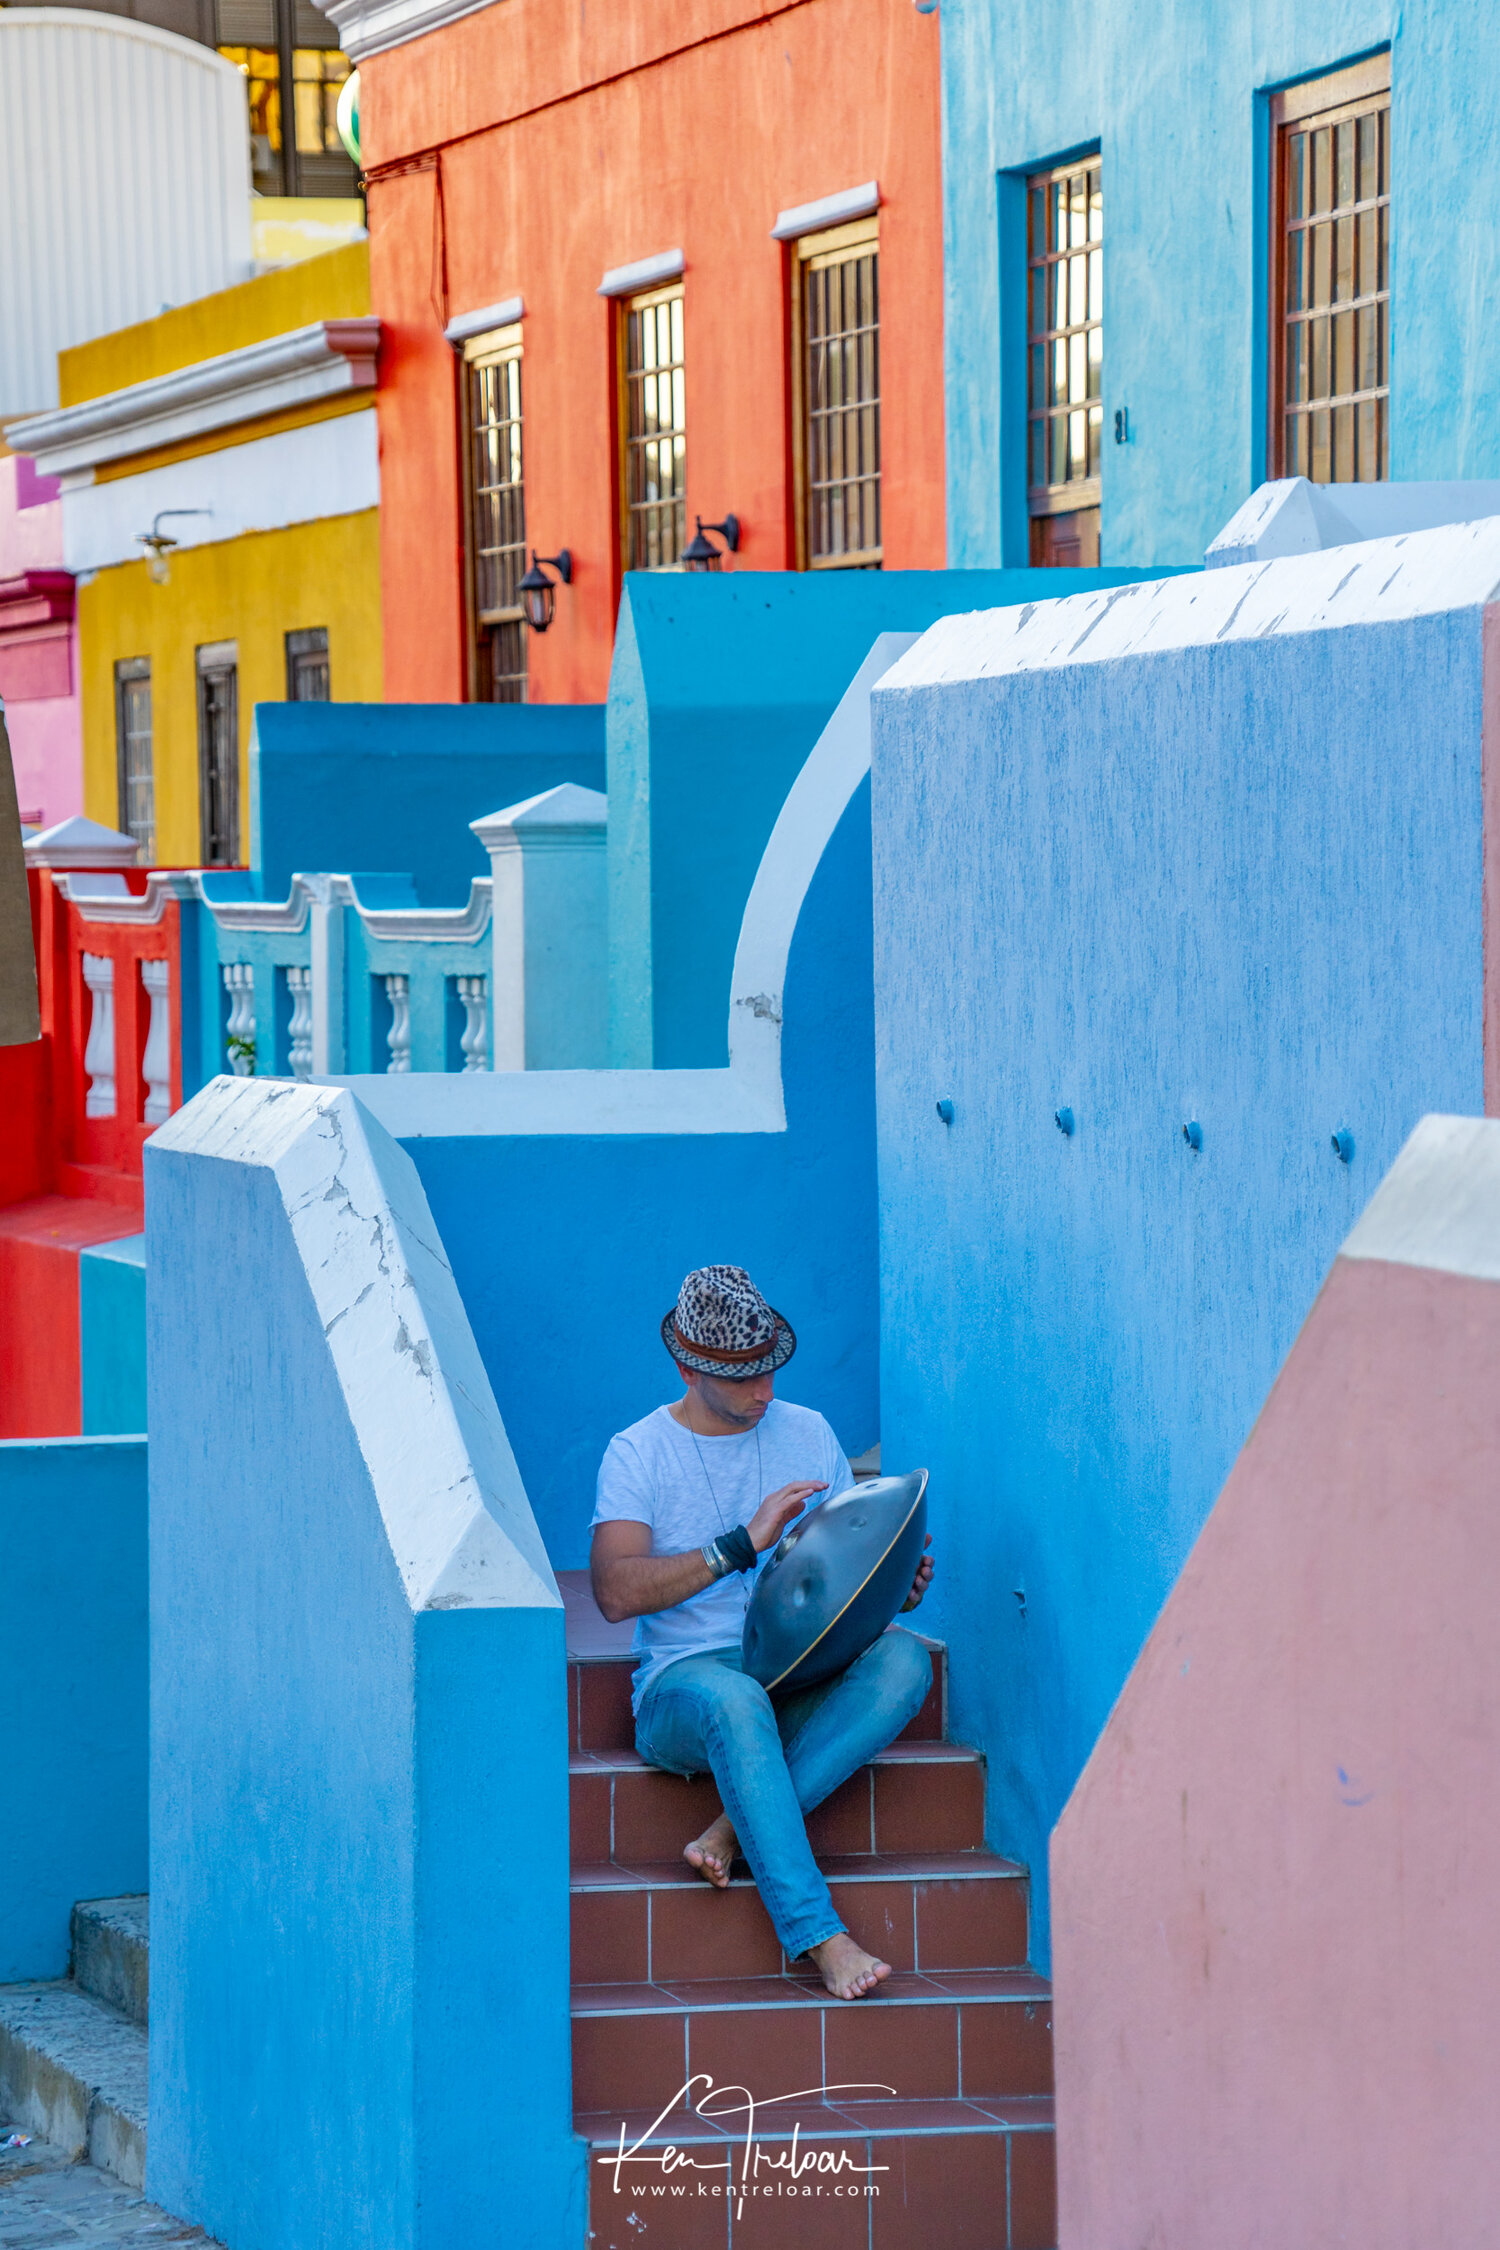 Marco Selvaggio Hang Musical Instrument - Bo-Kaap, Cape Town South Africa - Image by Ken Treloar Photography 2019-2.jpg